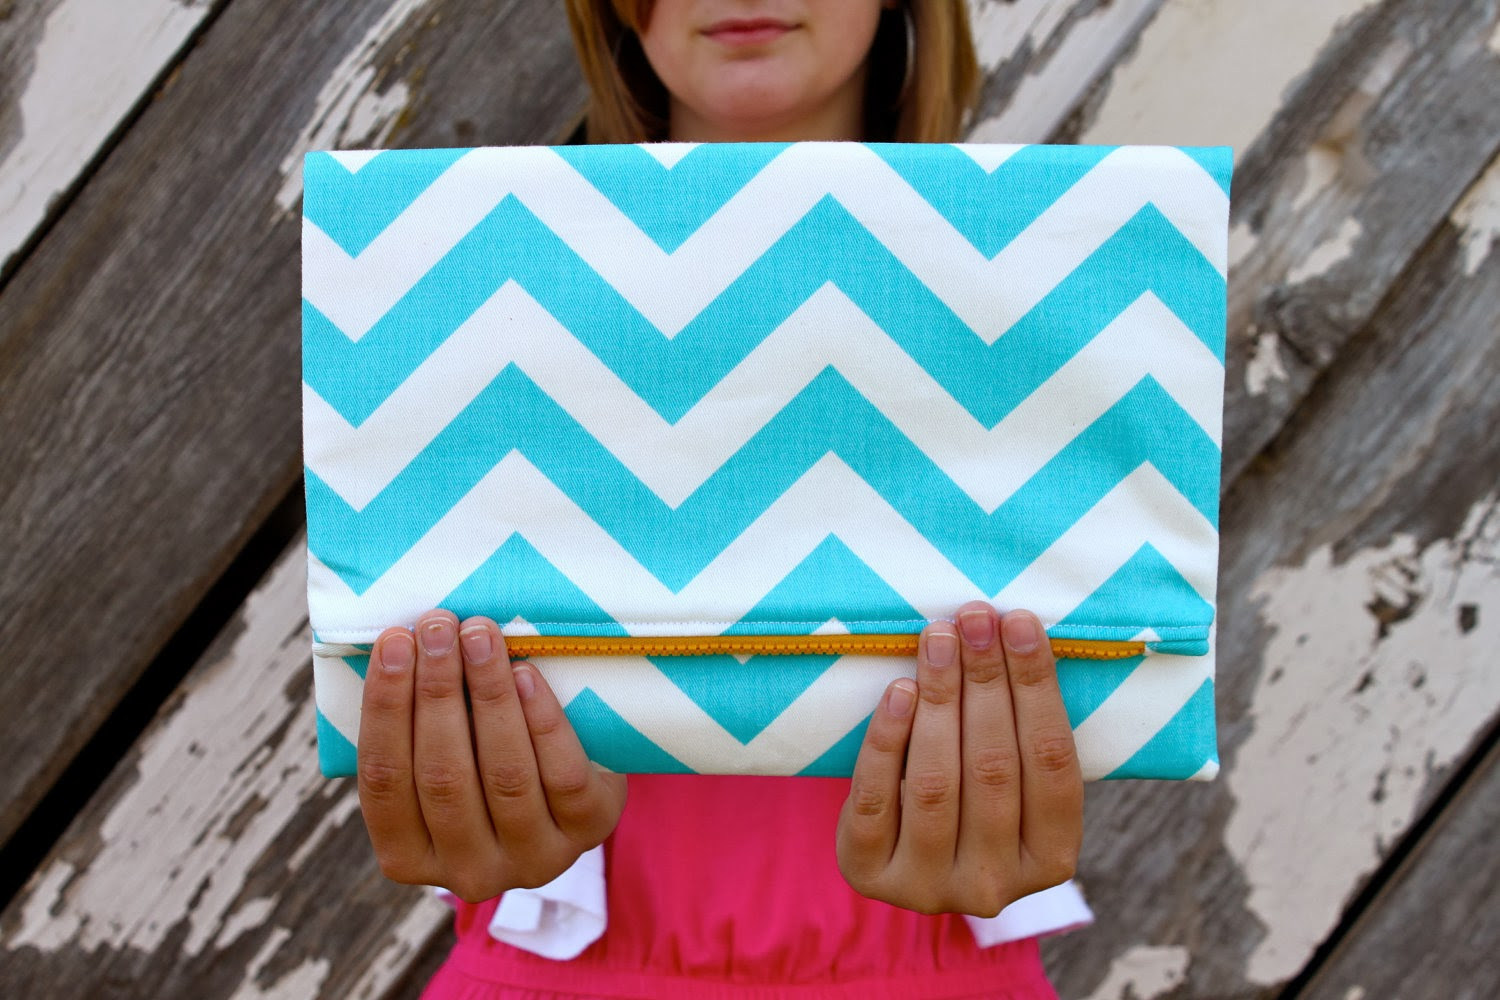 https://www.etsy.com/listing/97714145/the-zoe-clutch-aquawhite-chevron-print